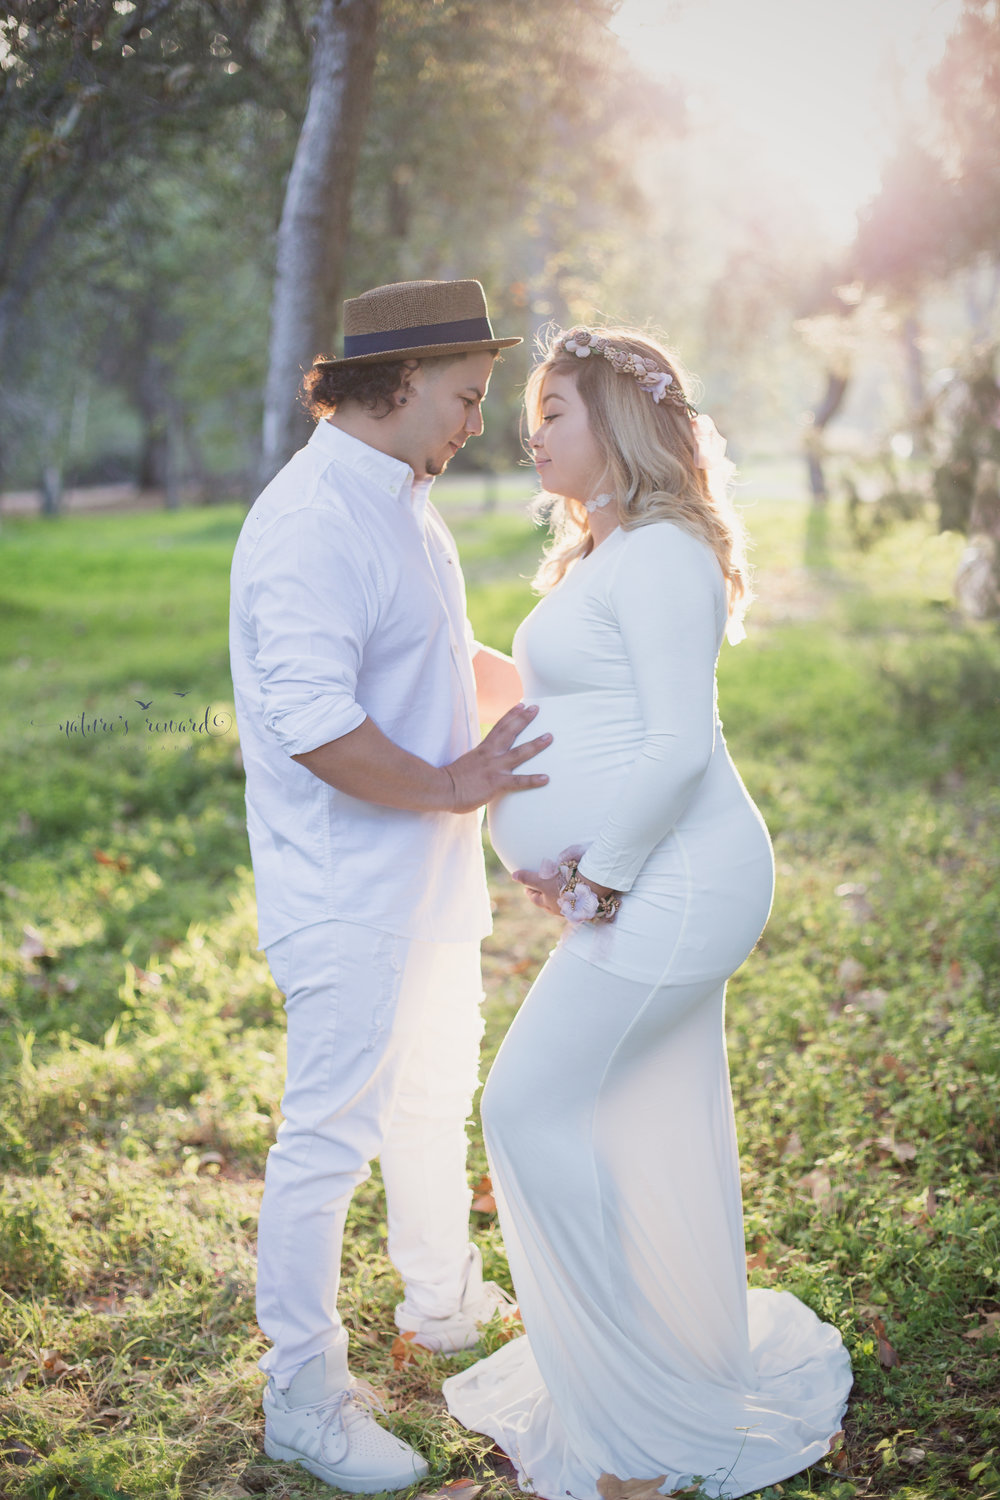 Beautiful light on this lovely couple wearing white.  Lovely white maternity gown and soft colored flower crown, while father to be wears white jeans white button up and a stunning hat to compliment the flower gown in this close pose by Nature's Reward Photography.